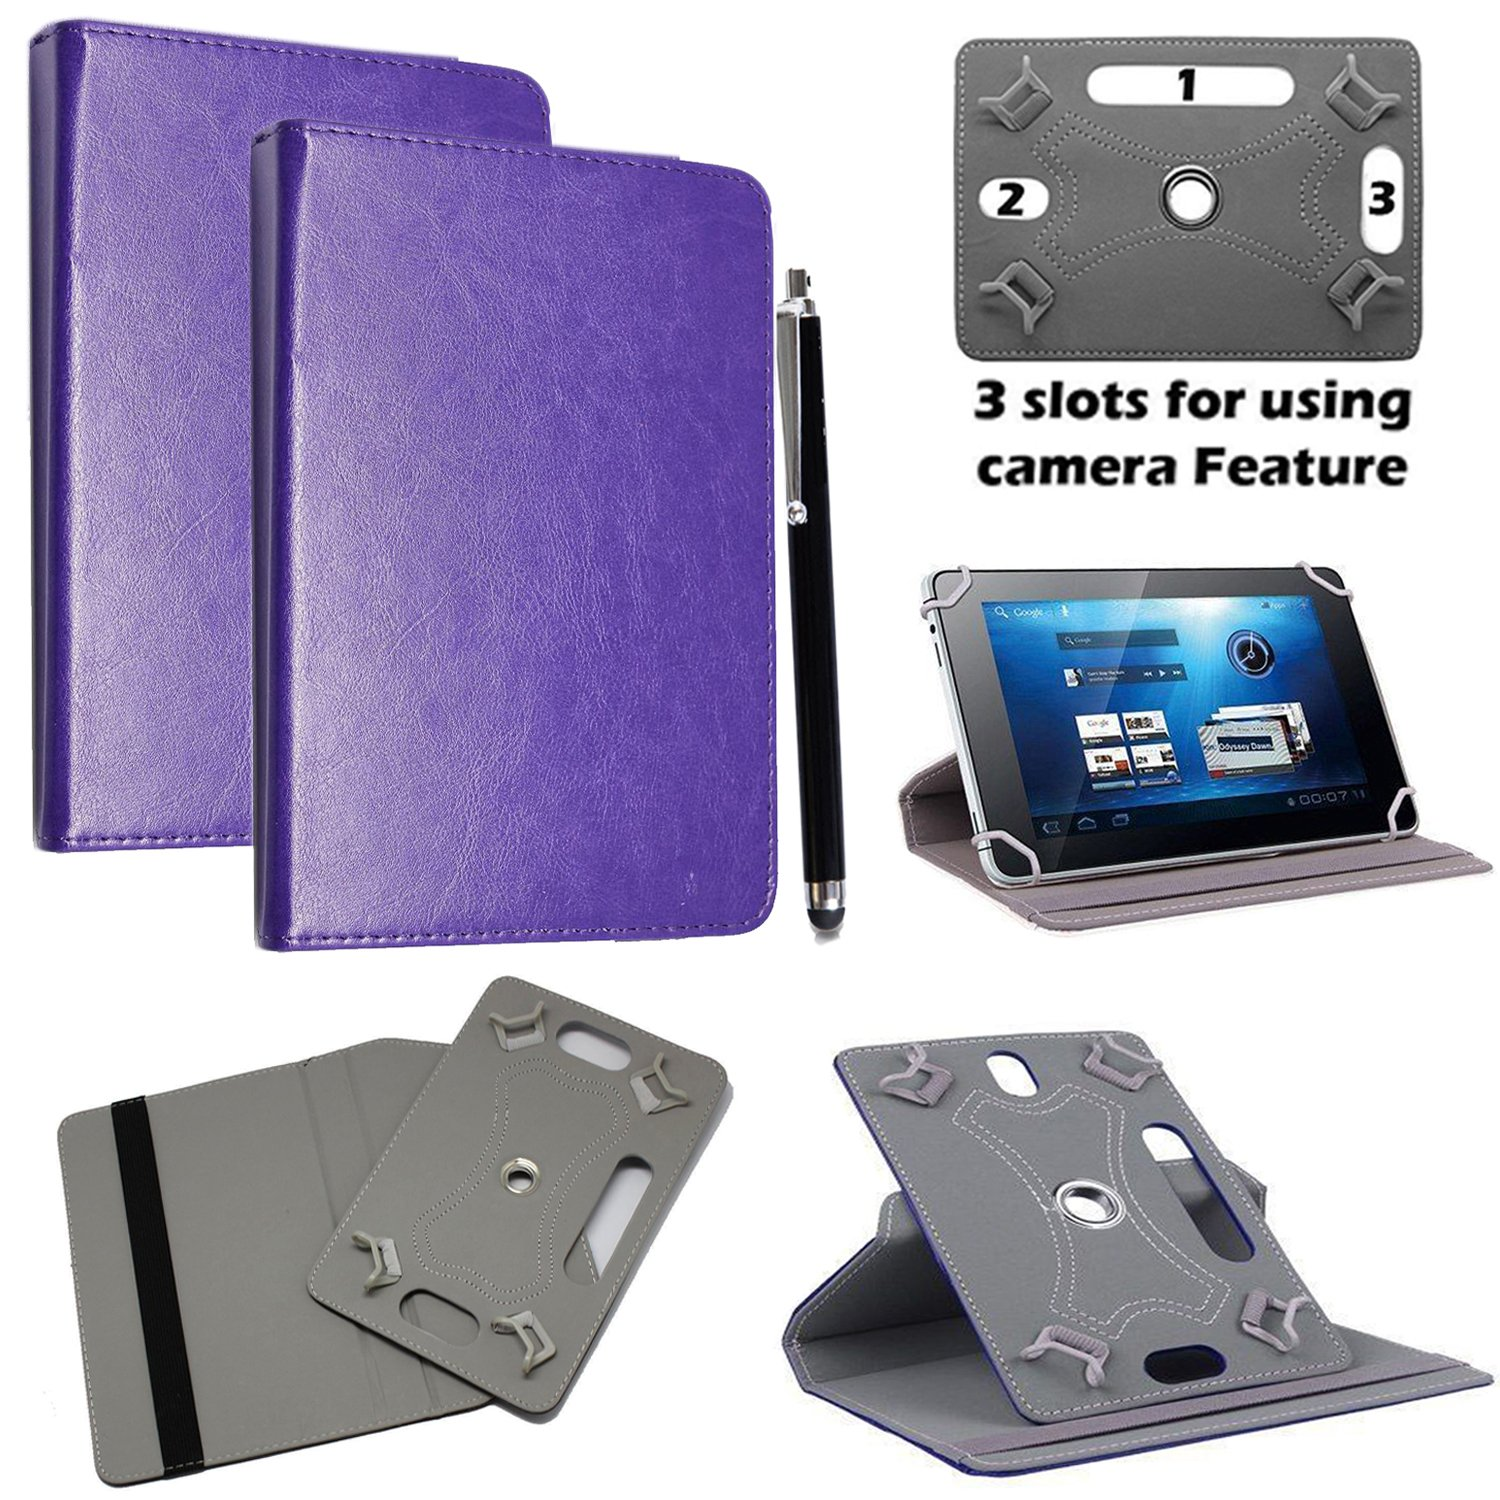 Stylus Pen Lenovo Acer Huawei Toshiba Tablets devices Sony Universal PU Leather 360/° Rotational Stand Folio Case Cover Fits All Samsung For 7 inch, Plain Purple Flip